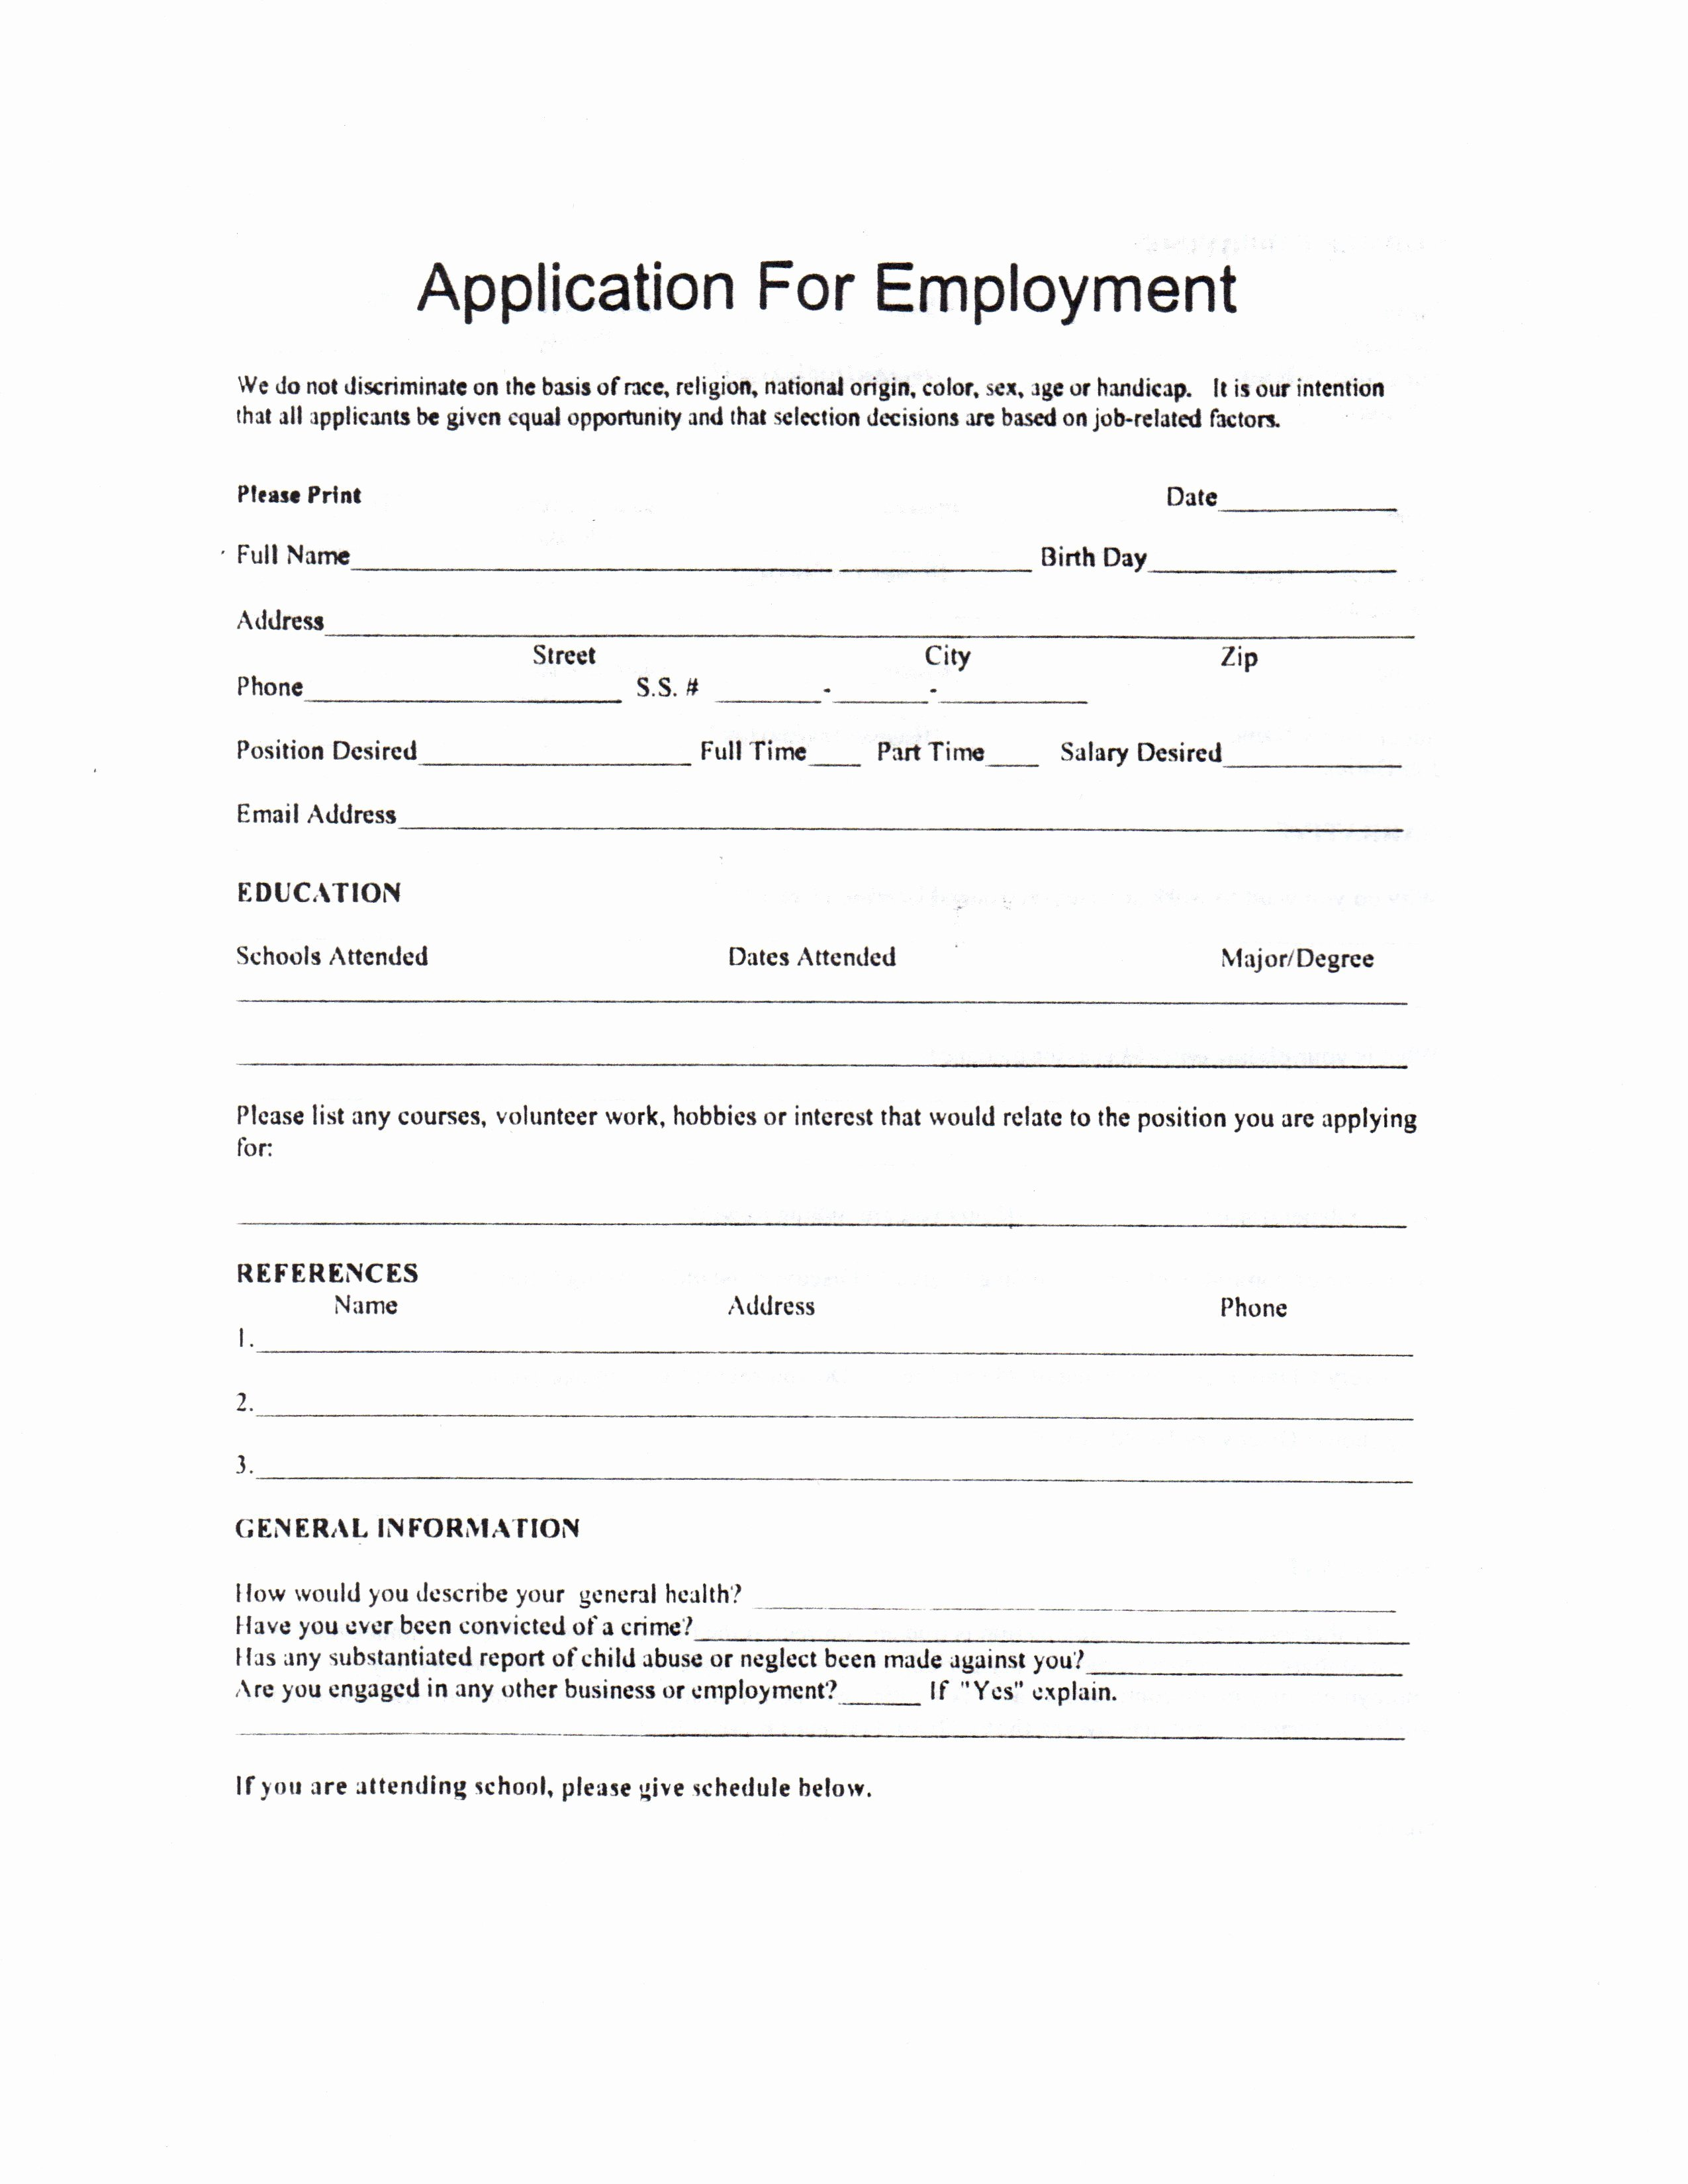 Child Care Application Template Awesome Child Care Employment Application Job Pinterest